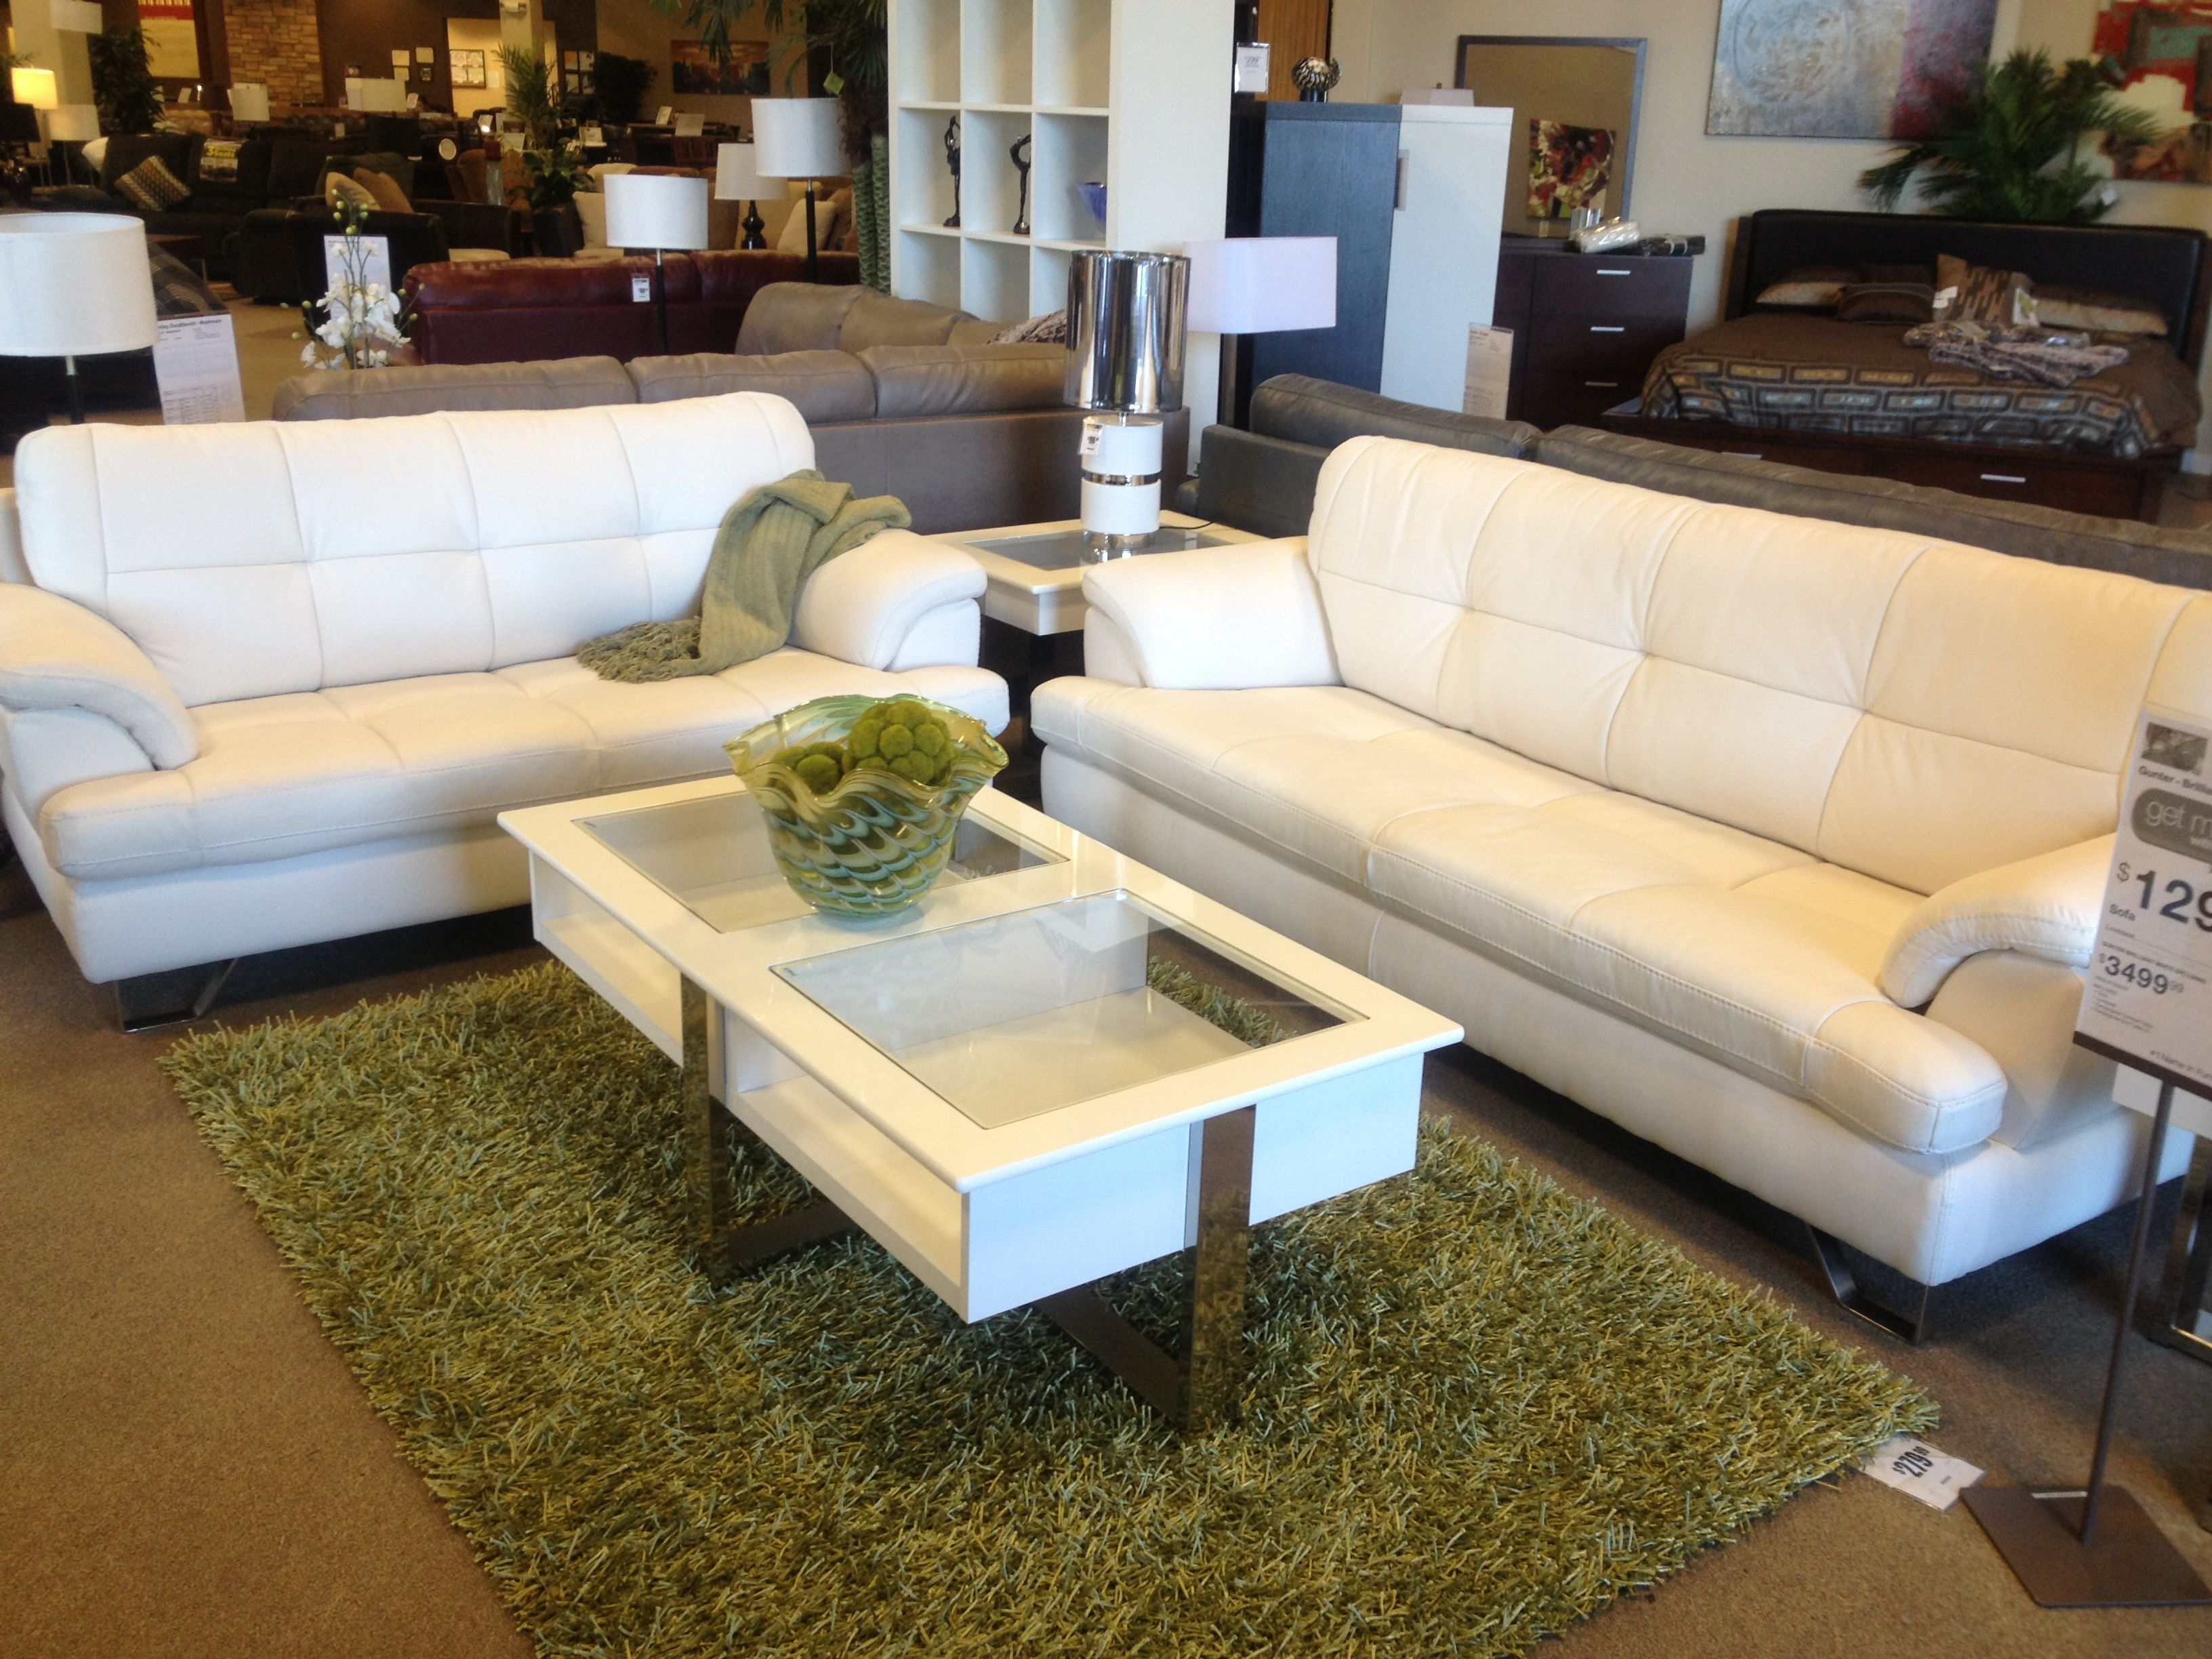 White Leather Couch White Coffee Table Love Lounging About Pinterest White Coffee